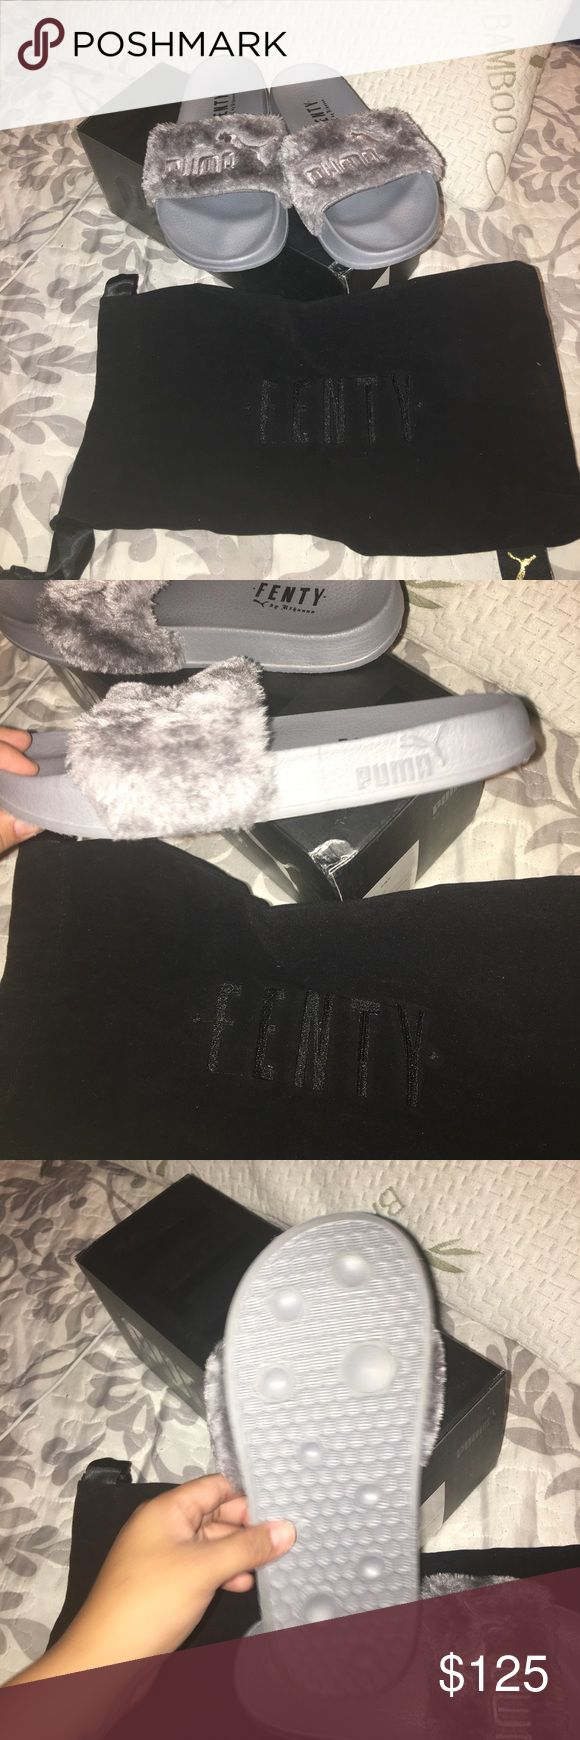 Puma Rihanna fur sliders brand new size 7 in women comes with box dust bag puma Shoes Sandals